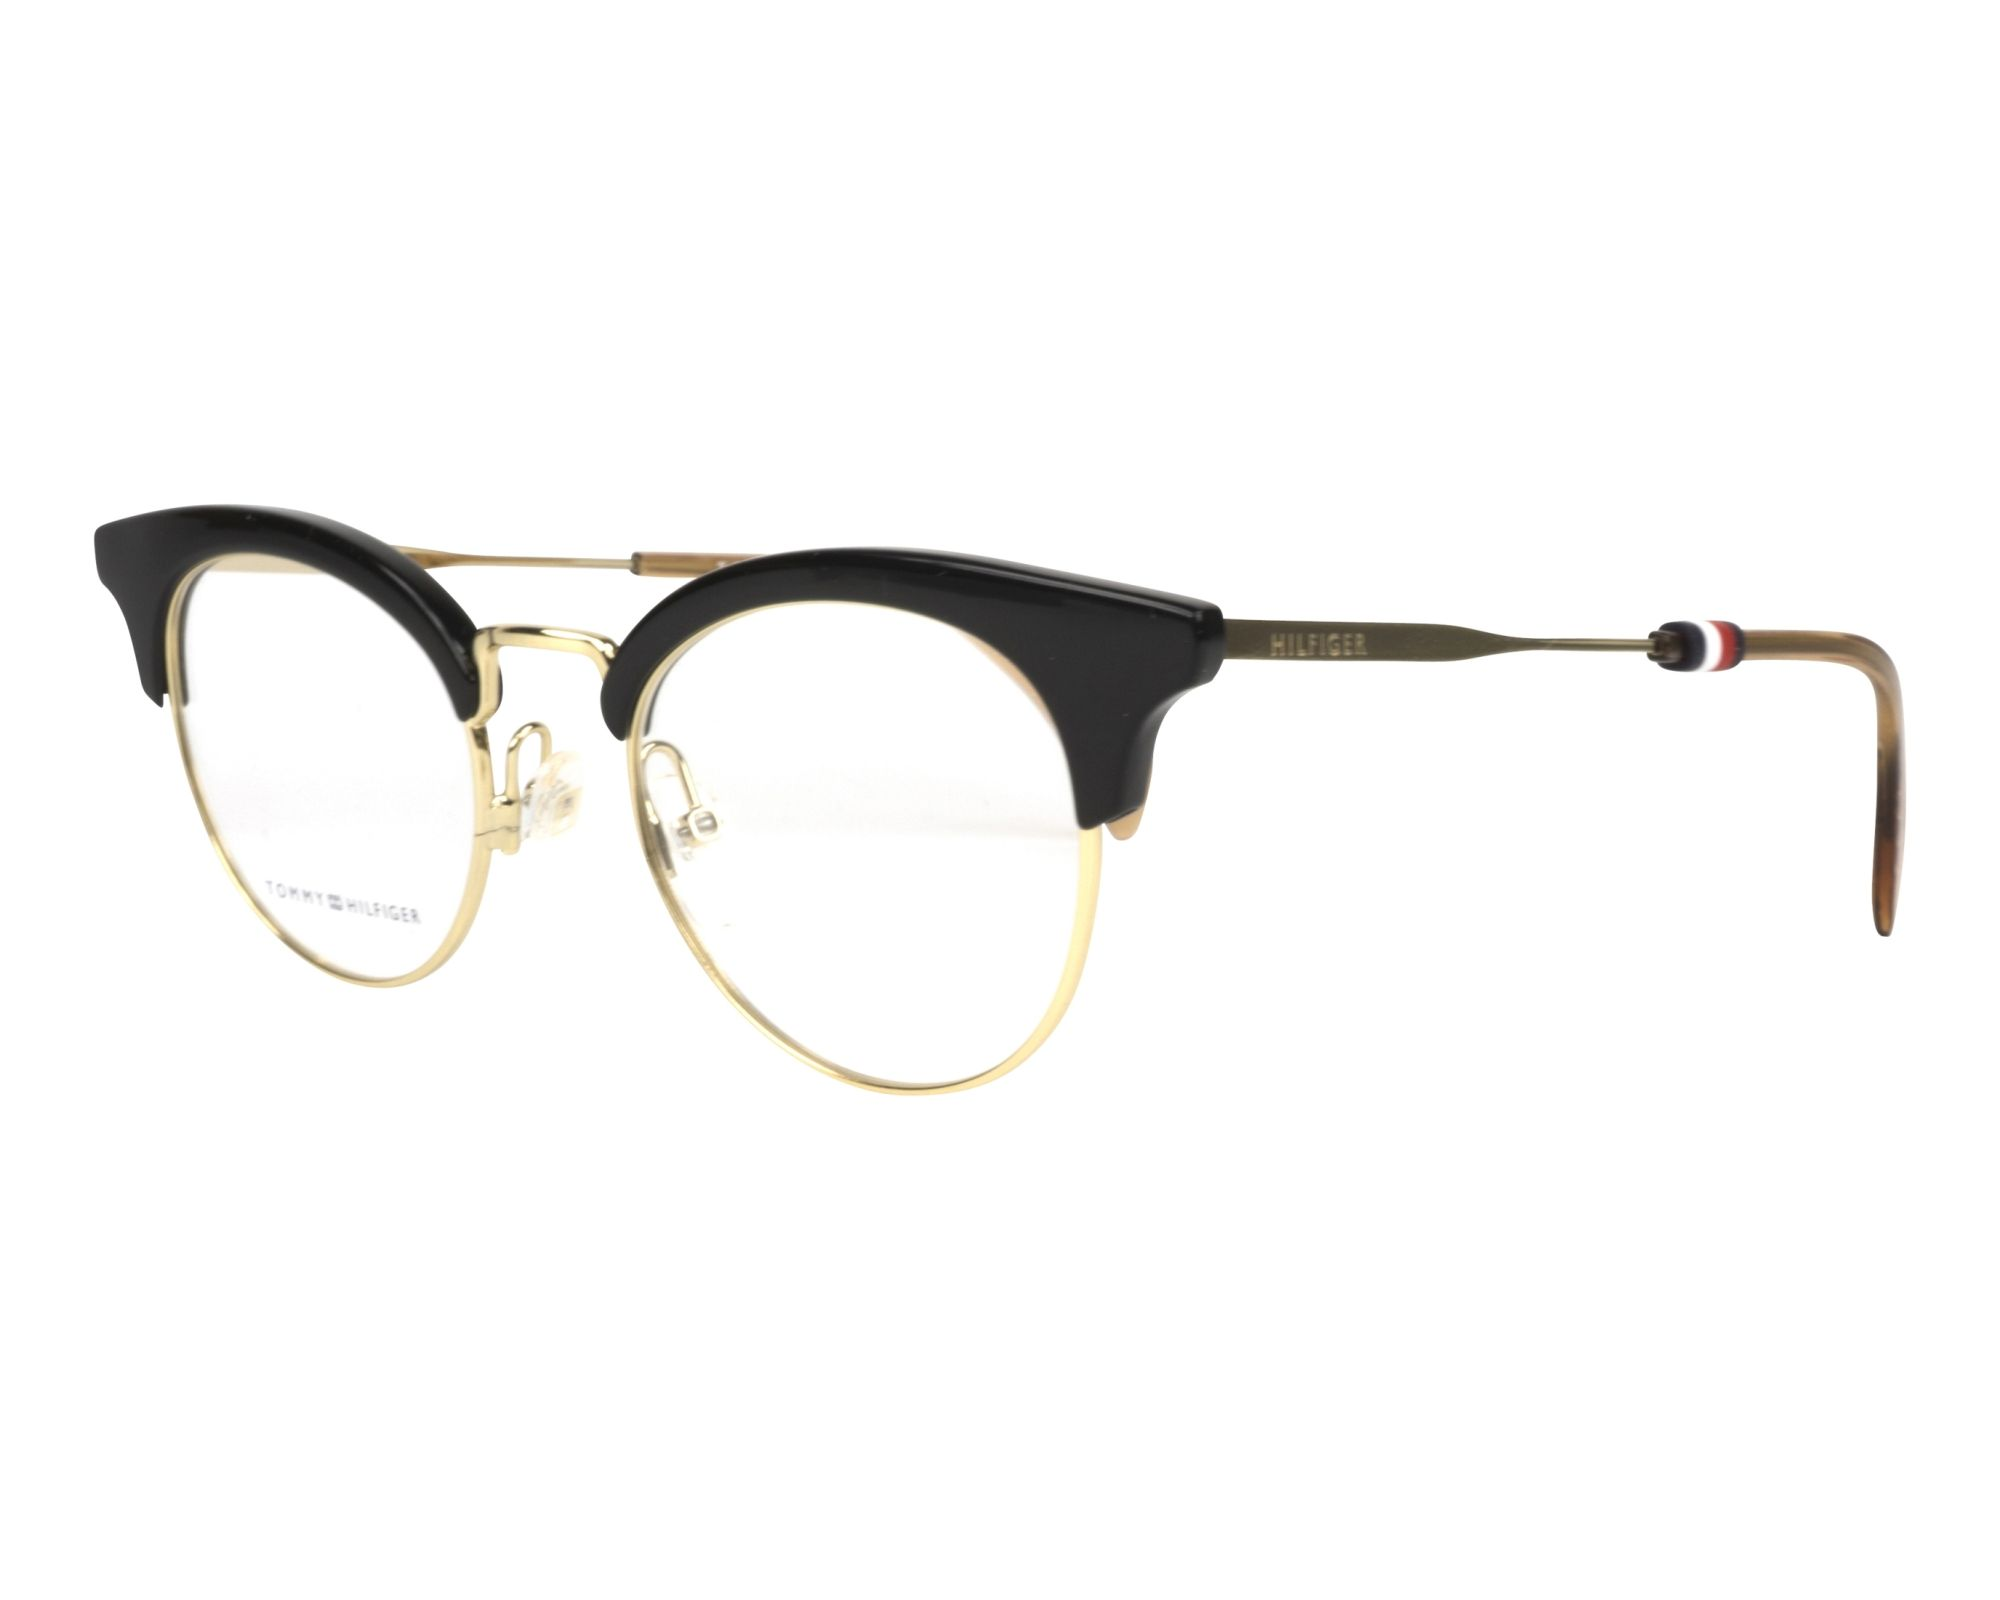 eyeglasses Tommy Hilfiger TH-1540 807 49-20 Black Gold profile view 990be992d53